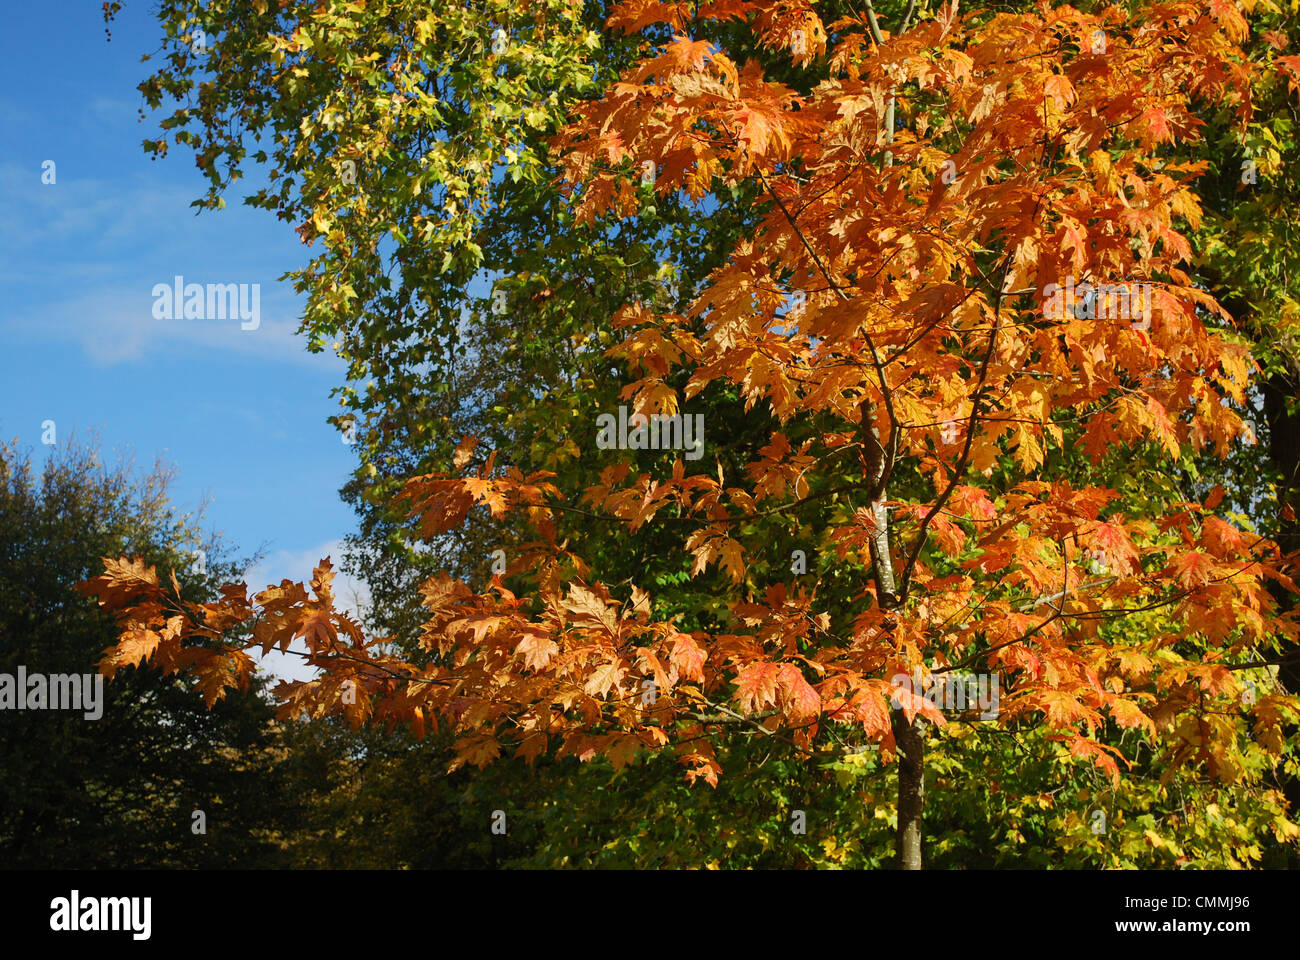 Autumn leaves in the UK - Stock Image